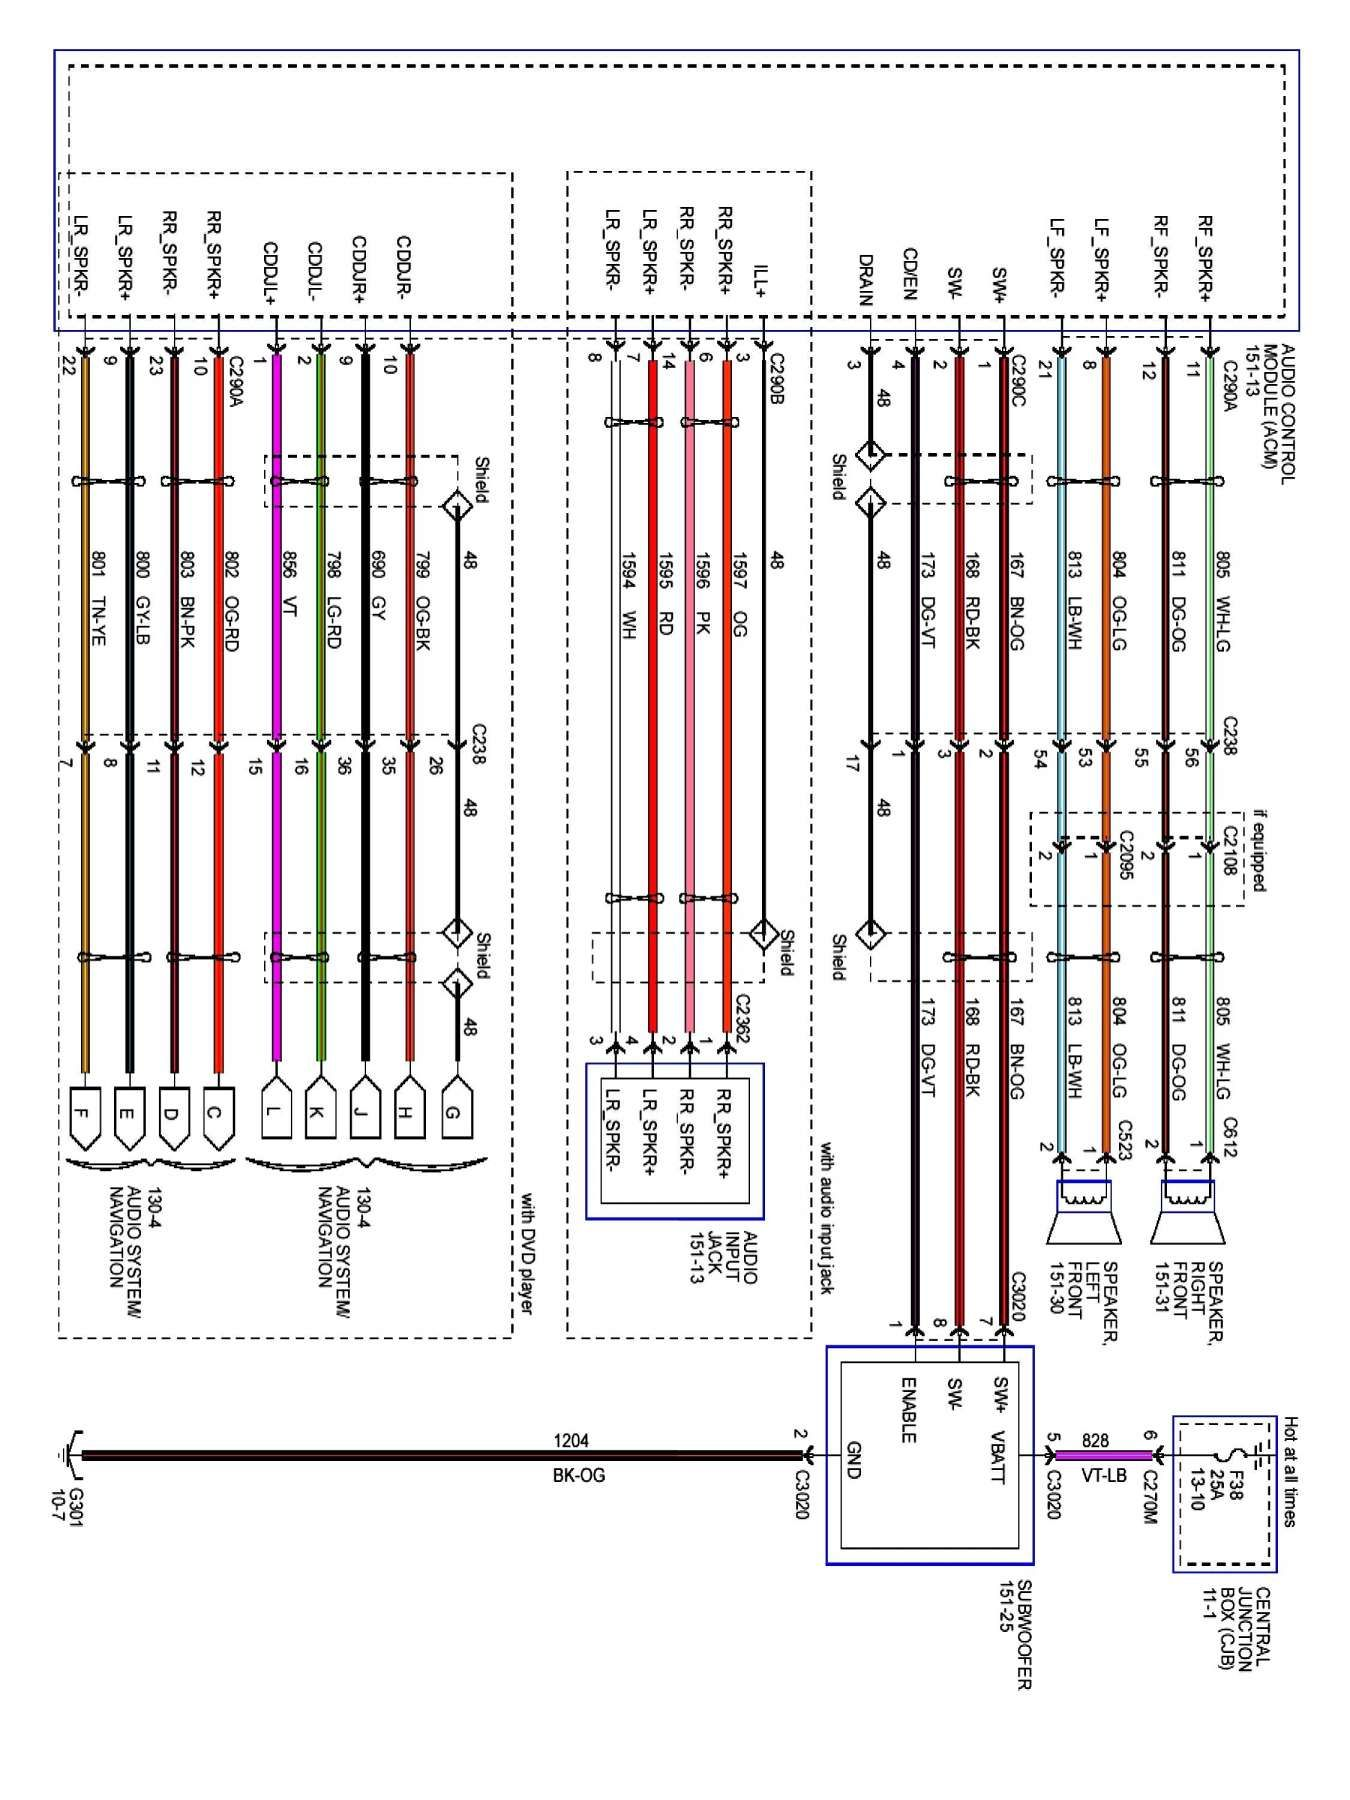 2004 Ford Explorer Xlt Radio Wiring Diagram from i.pinimg.com